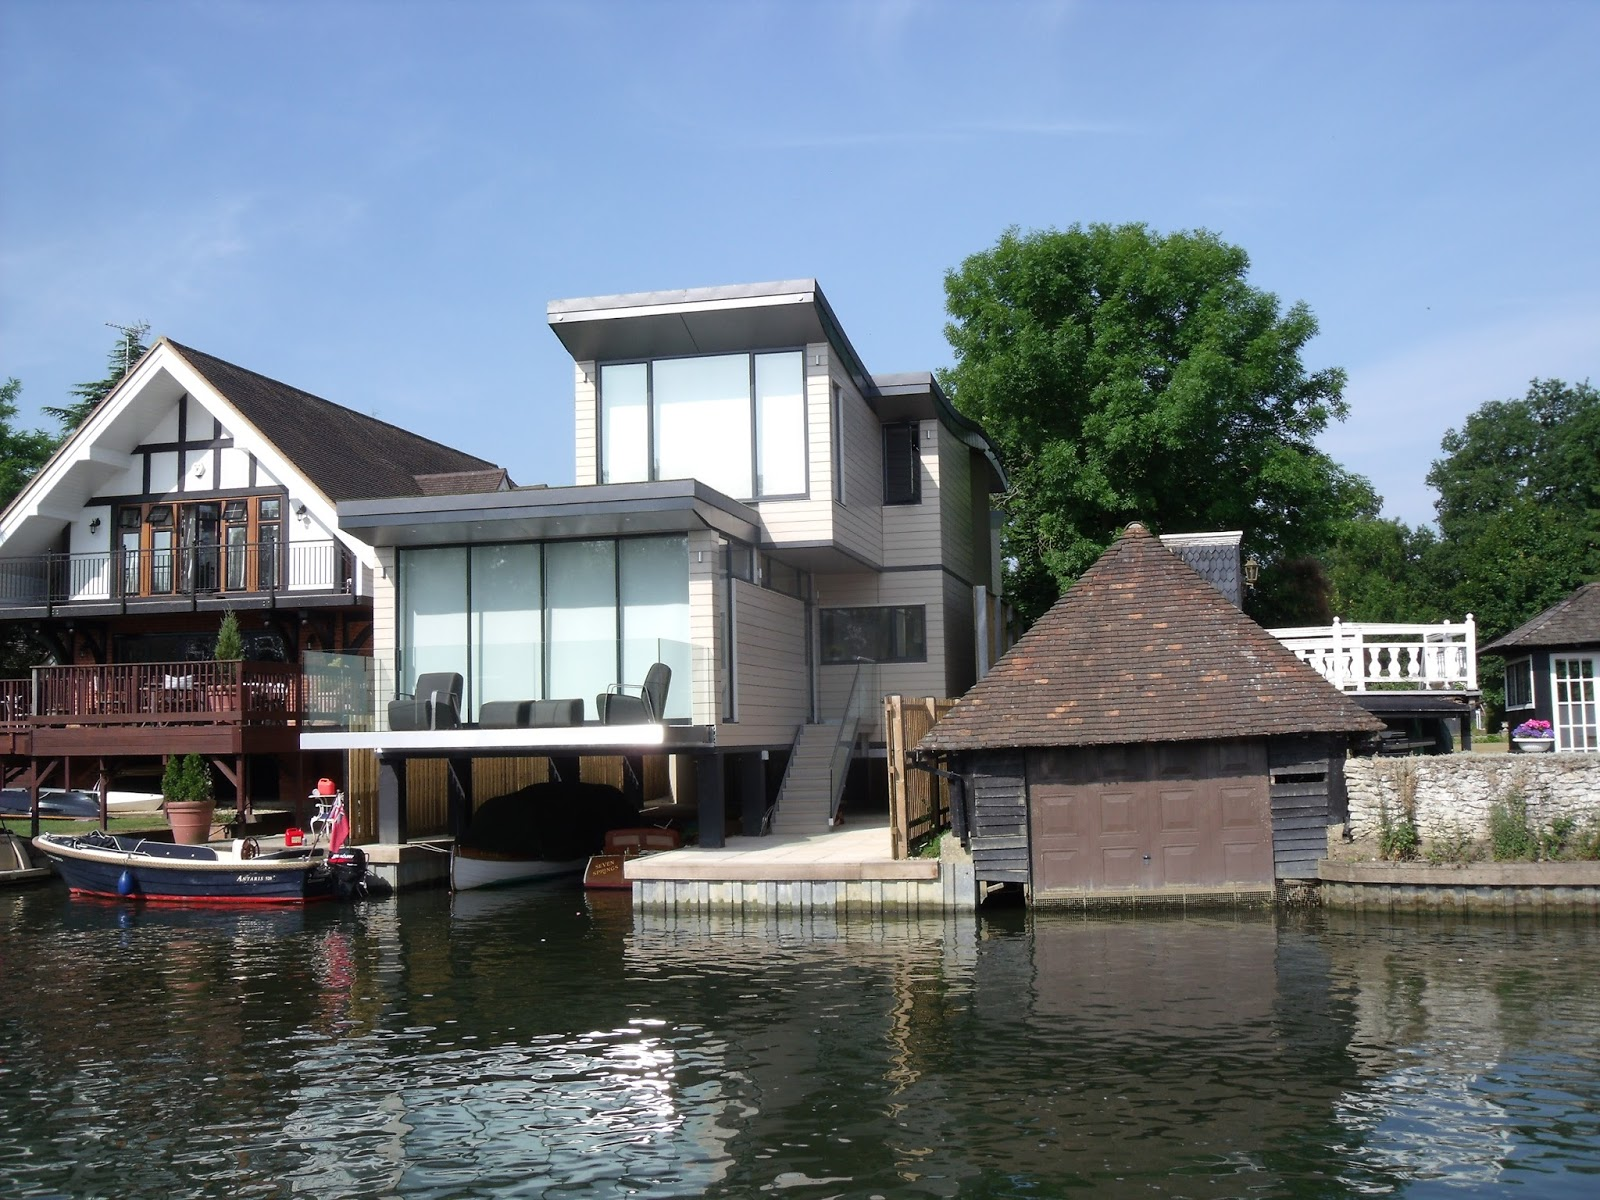 House design near river - Grand Designs House On The Thames